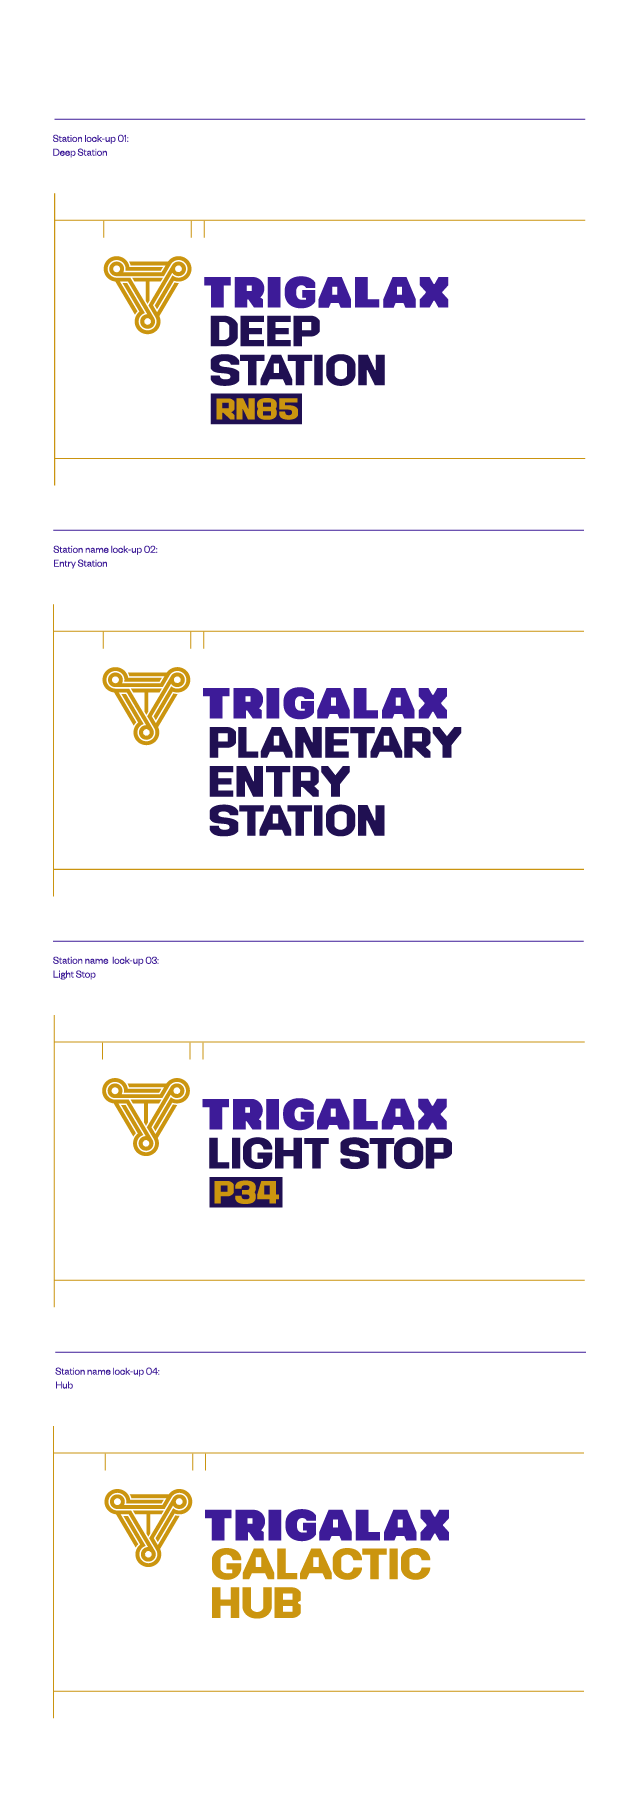 14_Trigalax-Space-Branding-Station-Lockups-2-M